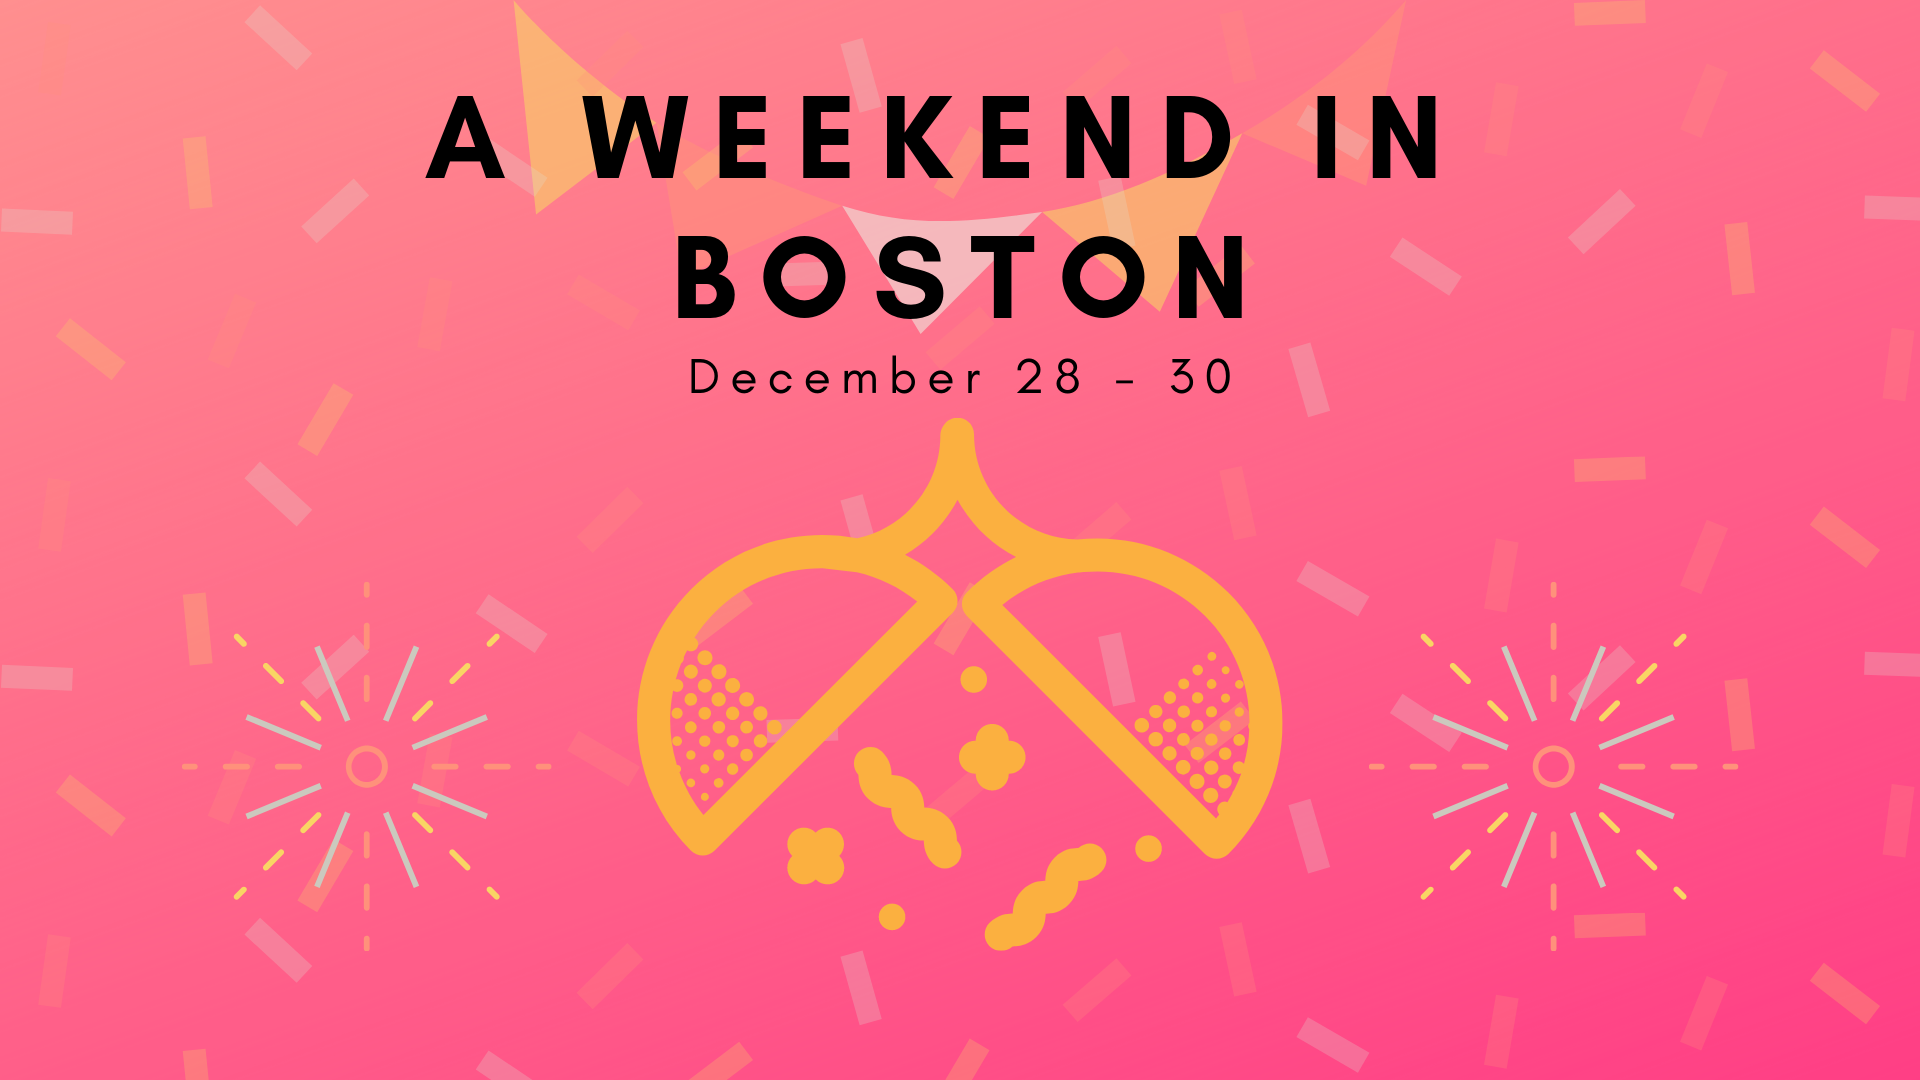 boston events this weekend